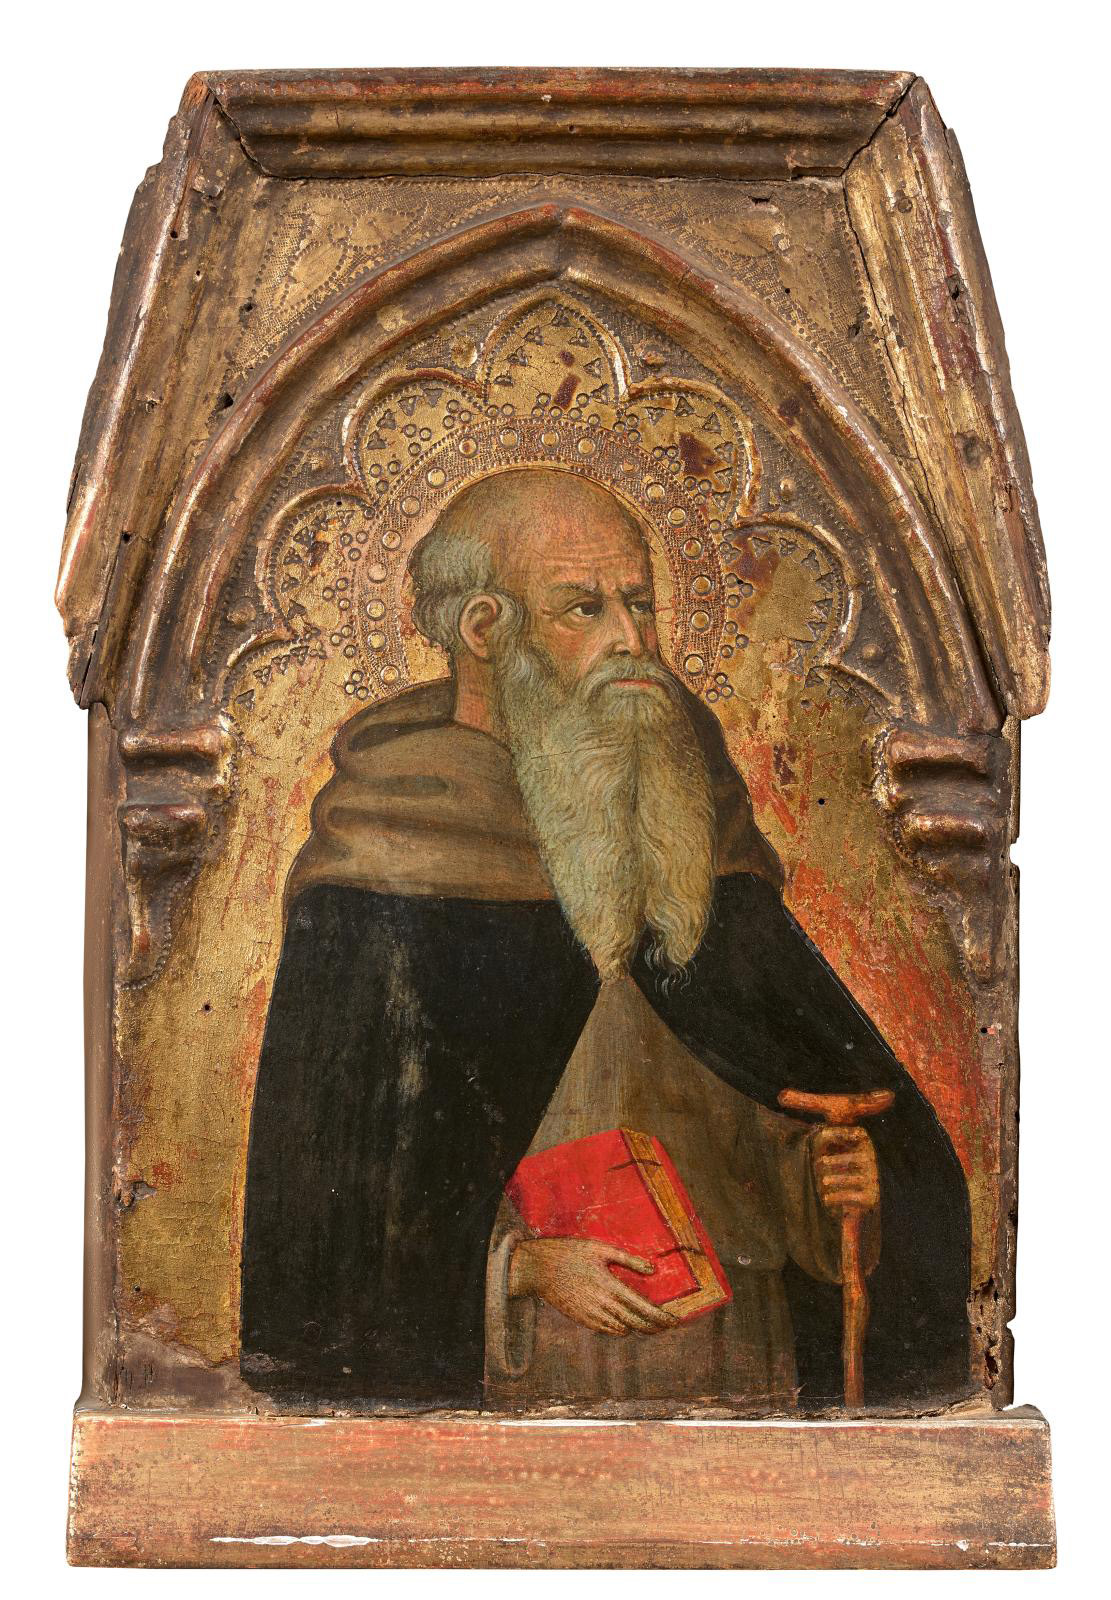 Bartoldo di Fredi (1330-1410), Saint Anthony the Abbot, upper register panel of an altarpiece, trapezoidal with multifoiled ogival arch, t